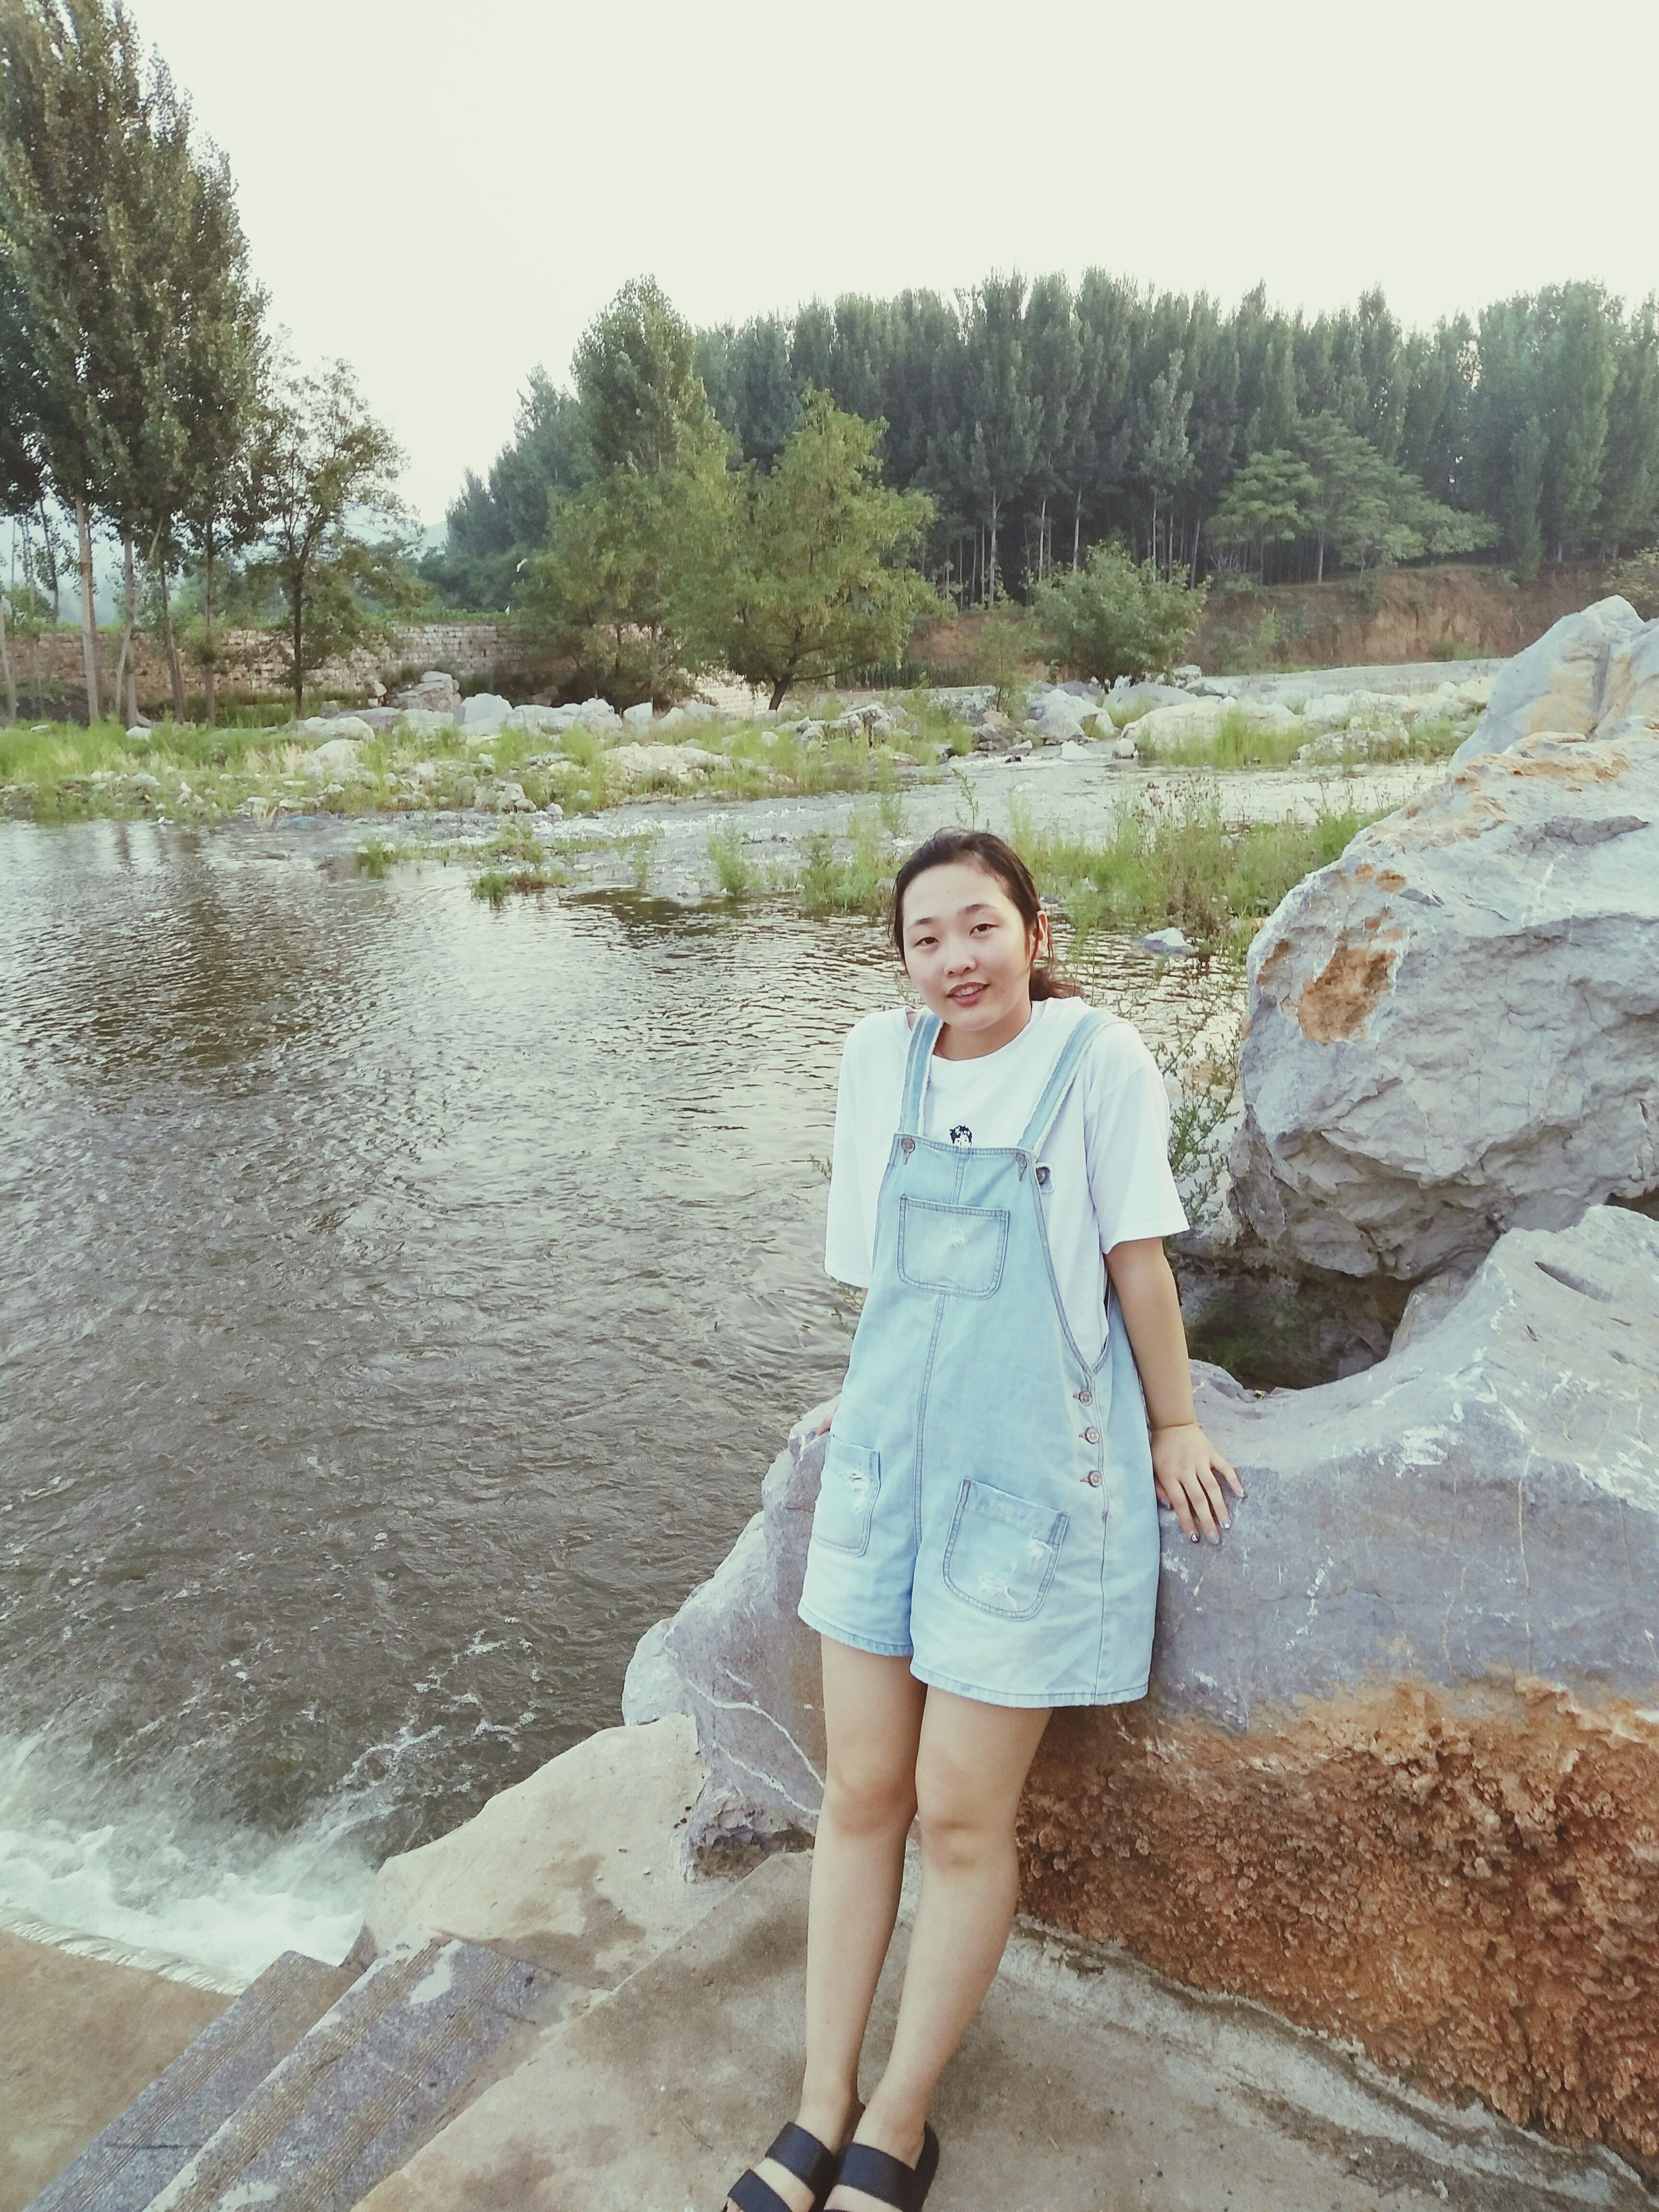 looking at camera, full length, one person, young adult, tree, portrait, young women, water, real people, day, front view, standing, outdoors, smiling, beautiful woman, lake, casual clothing, nature, leaning, leisure activity, happiness, one young woman only, sky, people